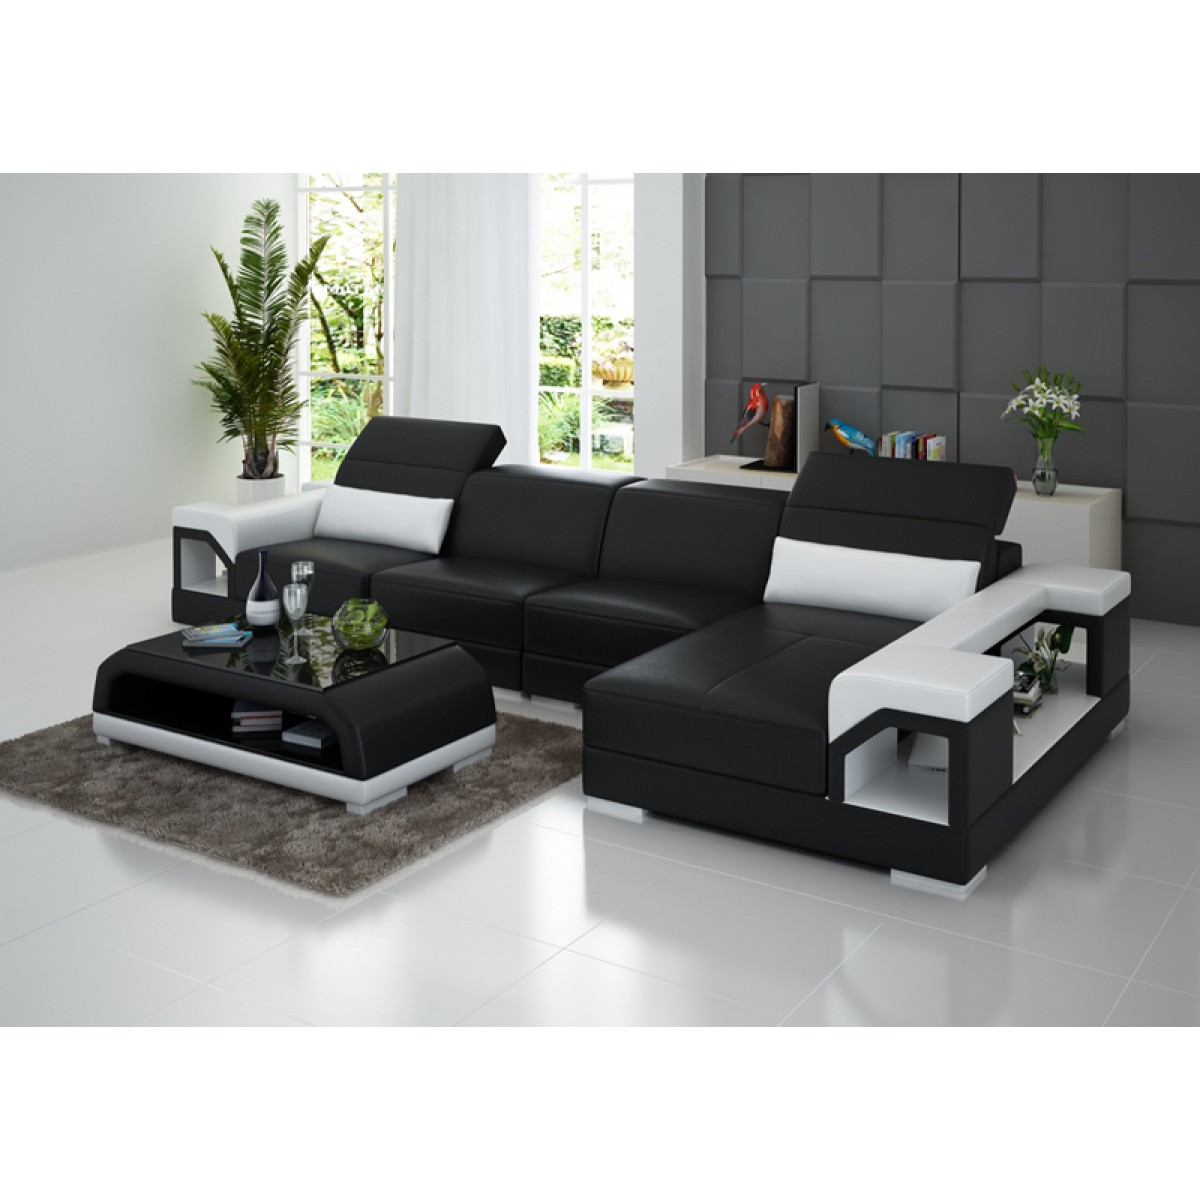 Canap d 39 angle en cuir design nimes t ti res inclinables lit convertible en option - Canape lit convertible cuir ...